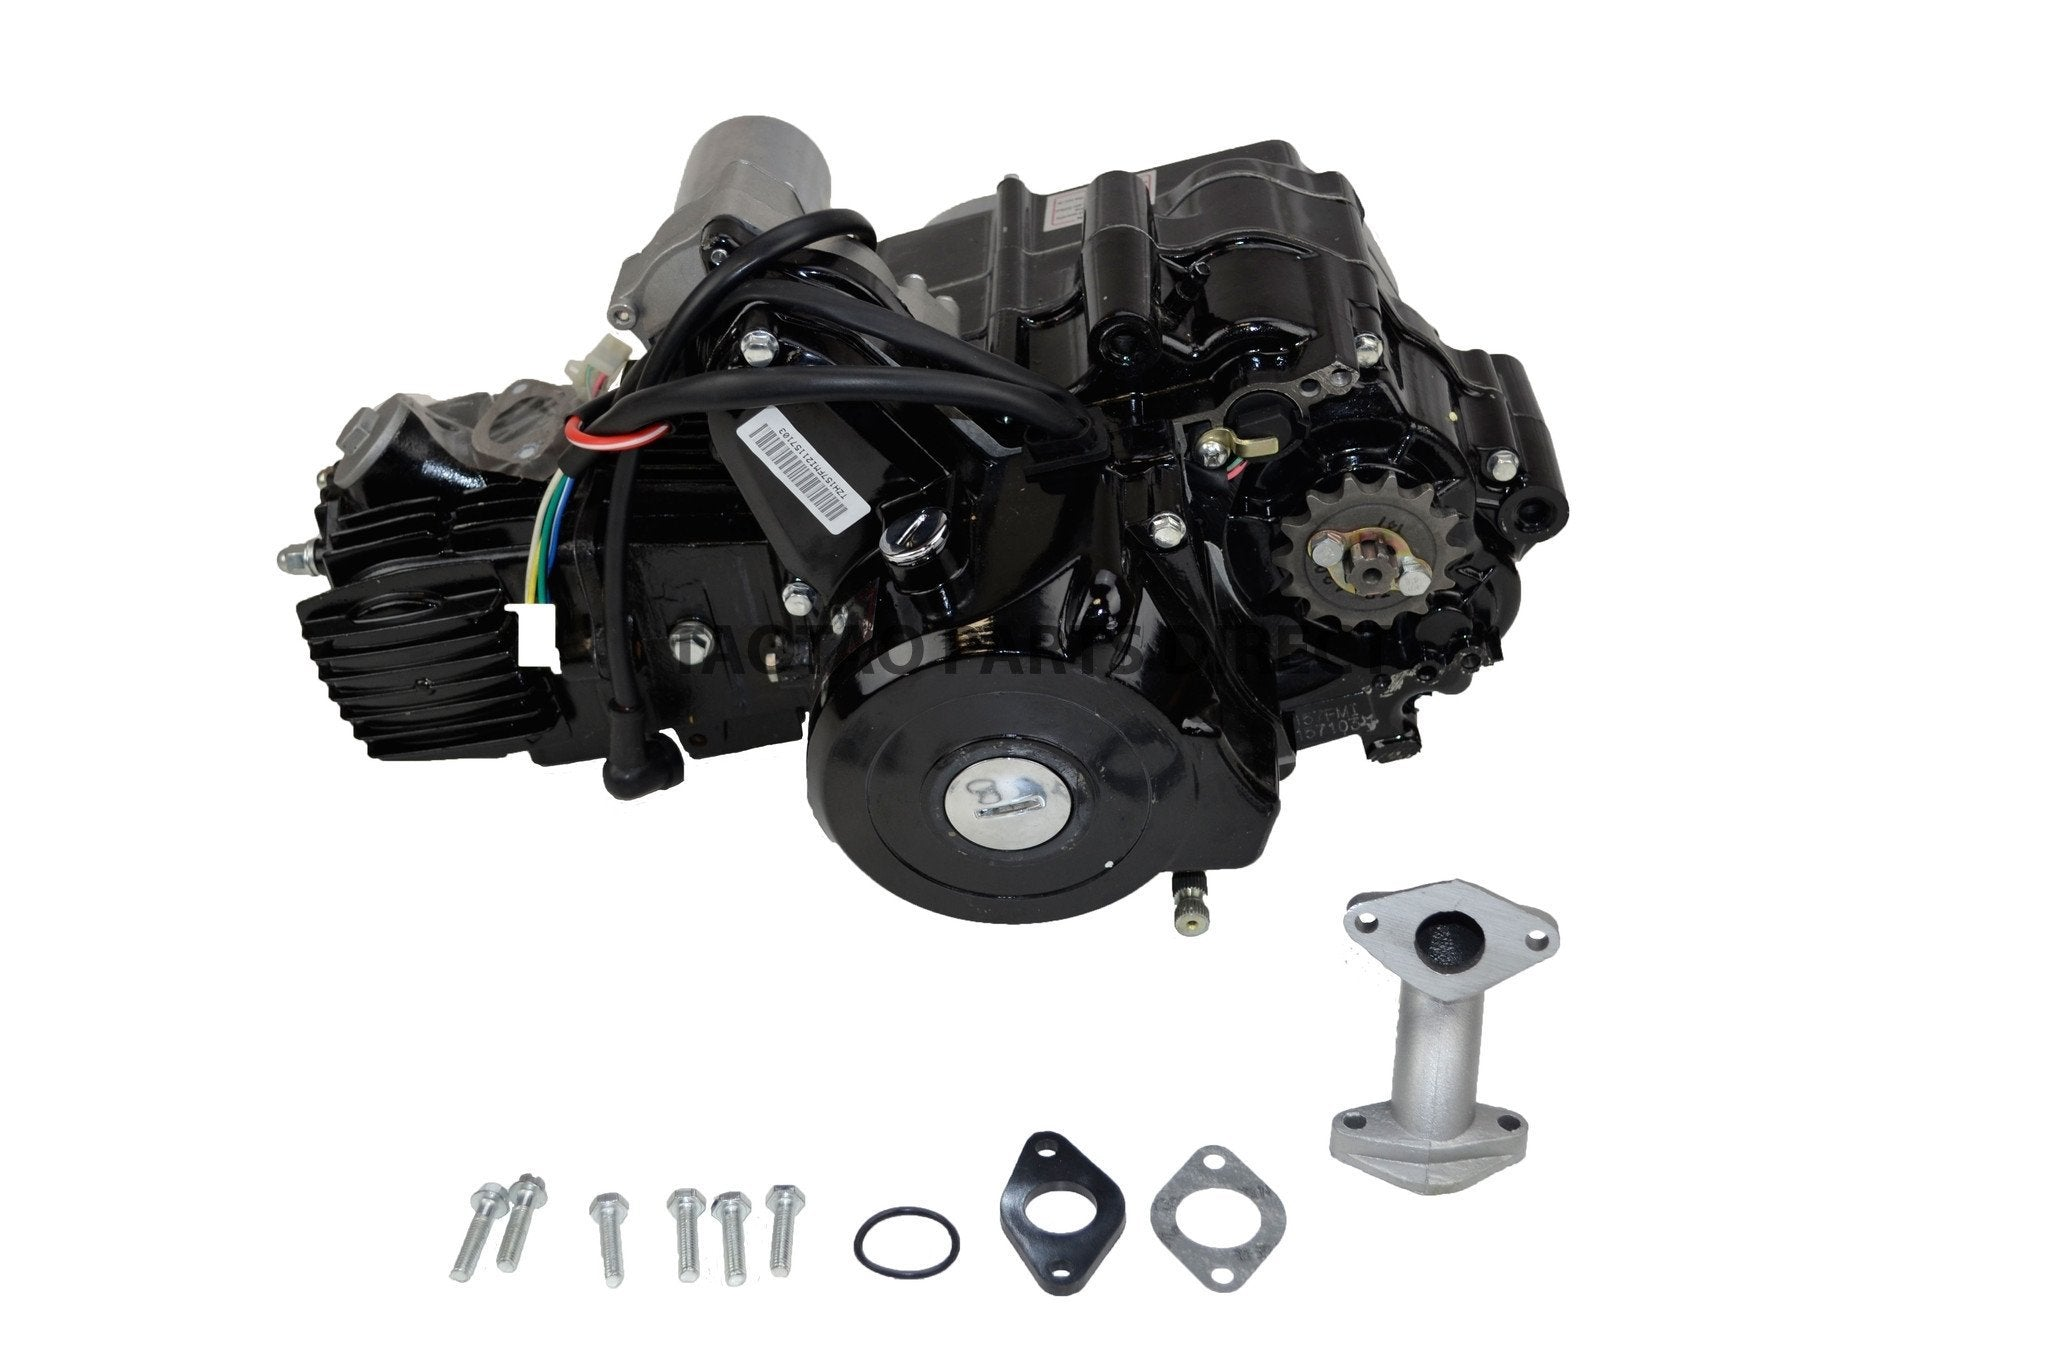 125cc 4 Speed Engine - TaoTao Parts Direct